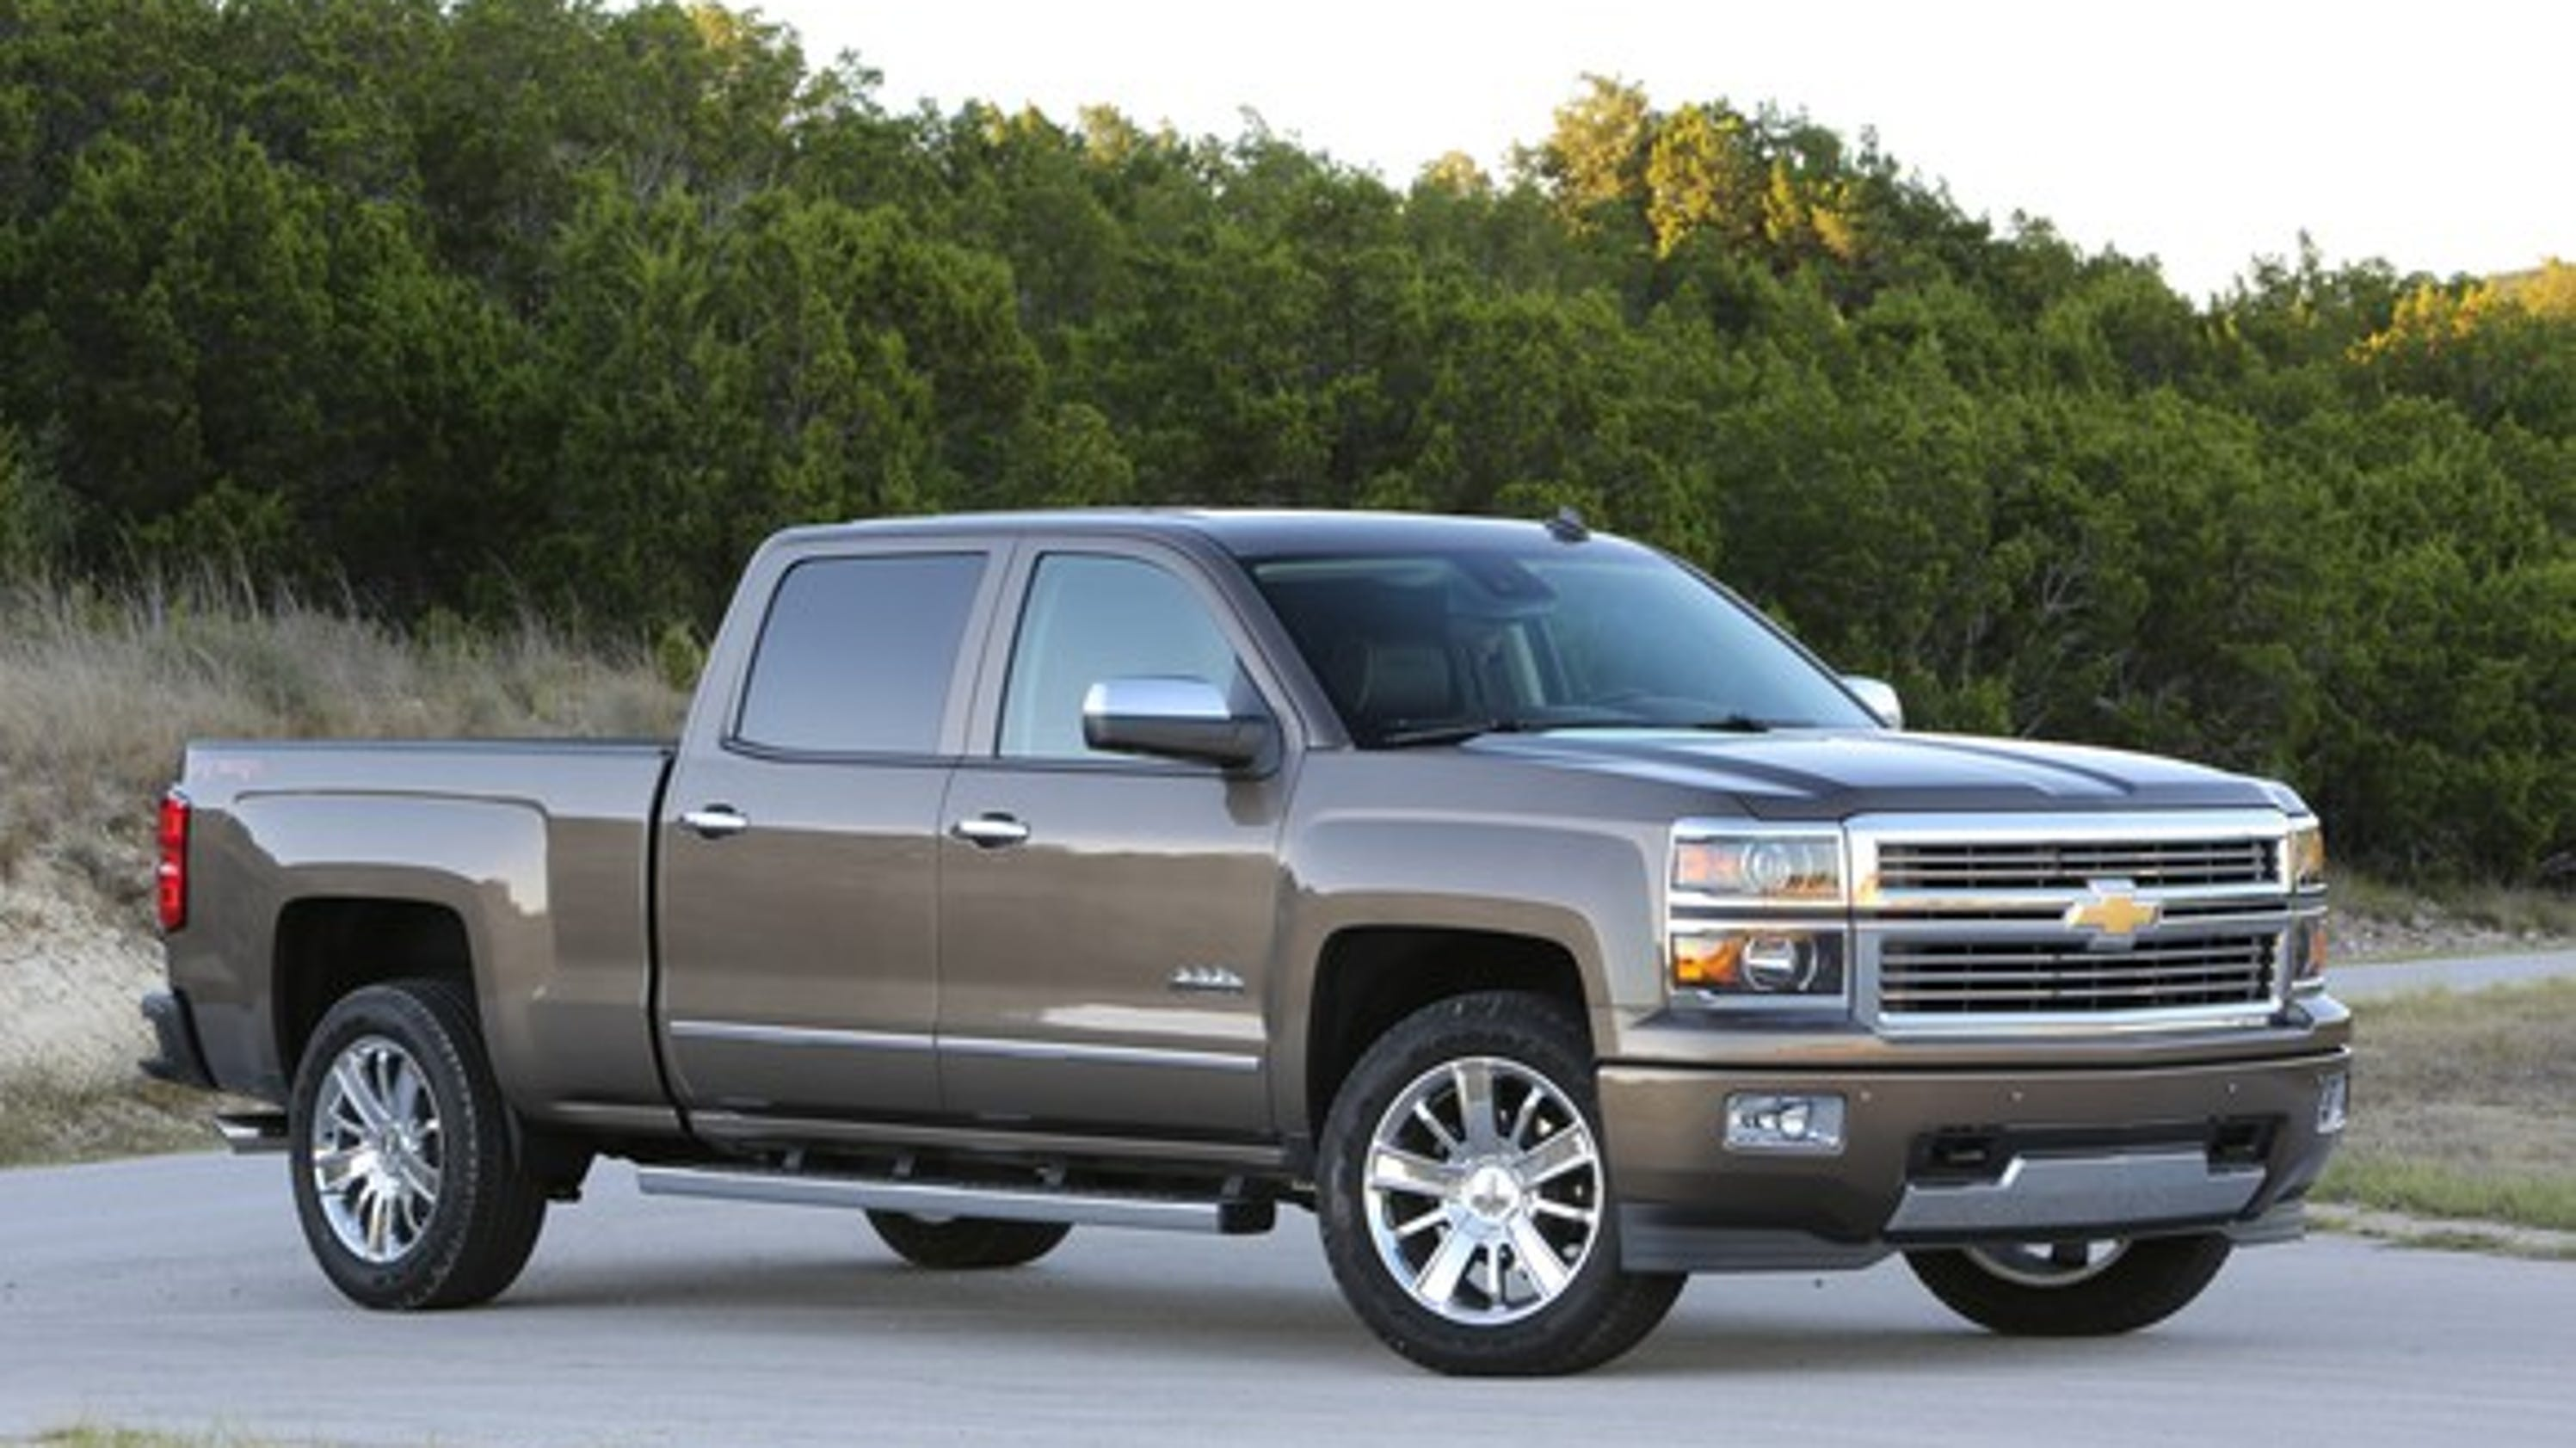 high silverado unveils photos silveradohighctry top chevrolet of new the line country